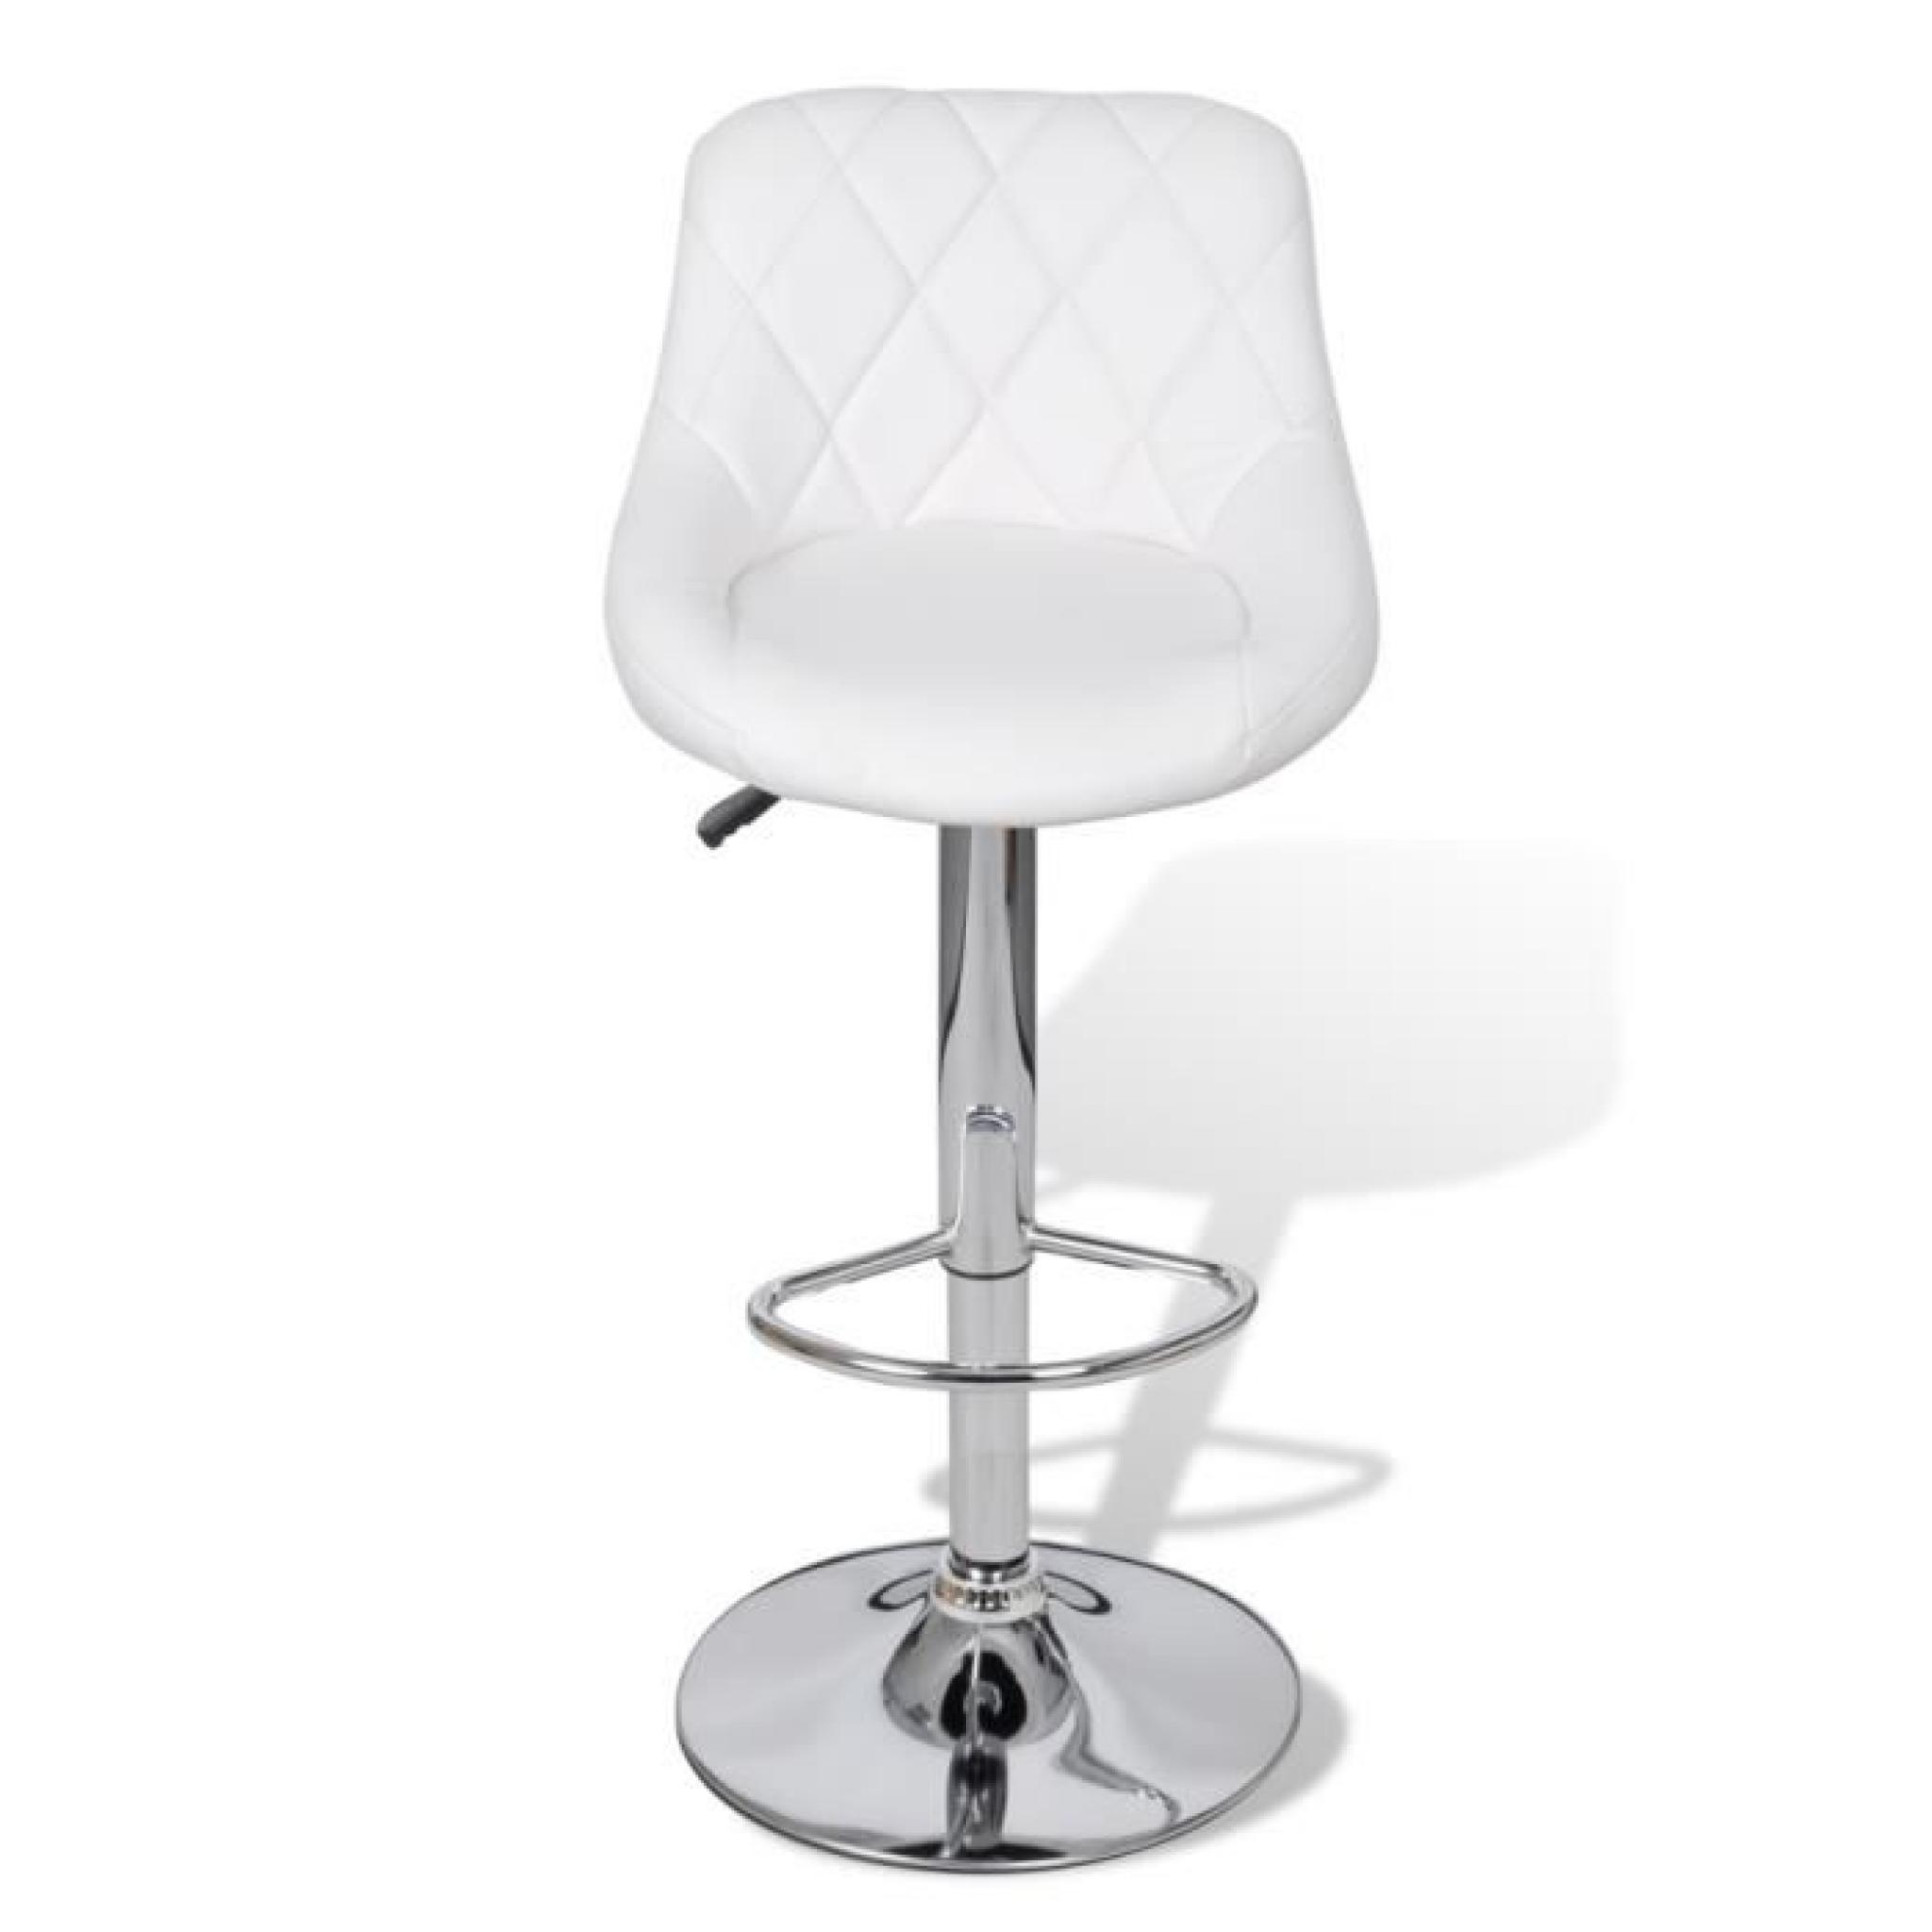 Tabouret Bar Moderne Lot De 2 Tabourets De Bar Blancs Design Moderne Achat